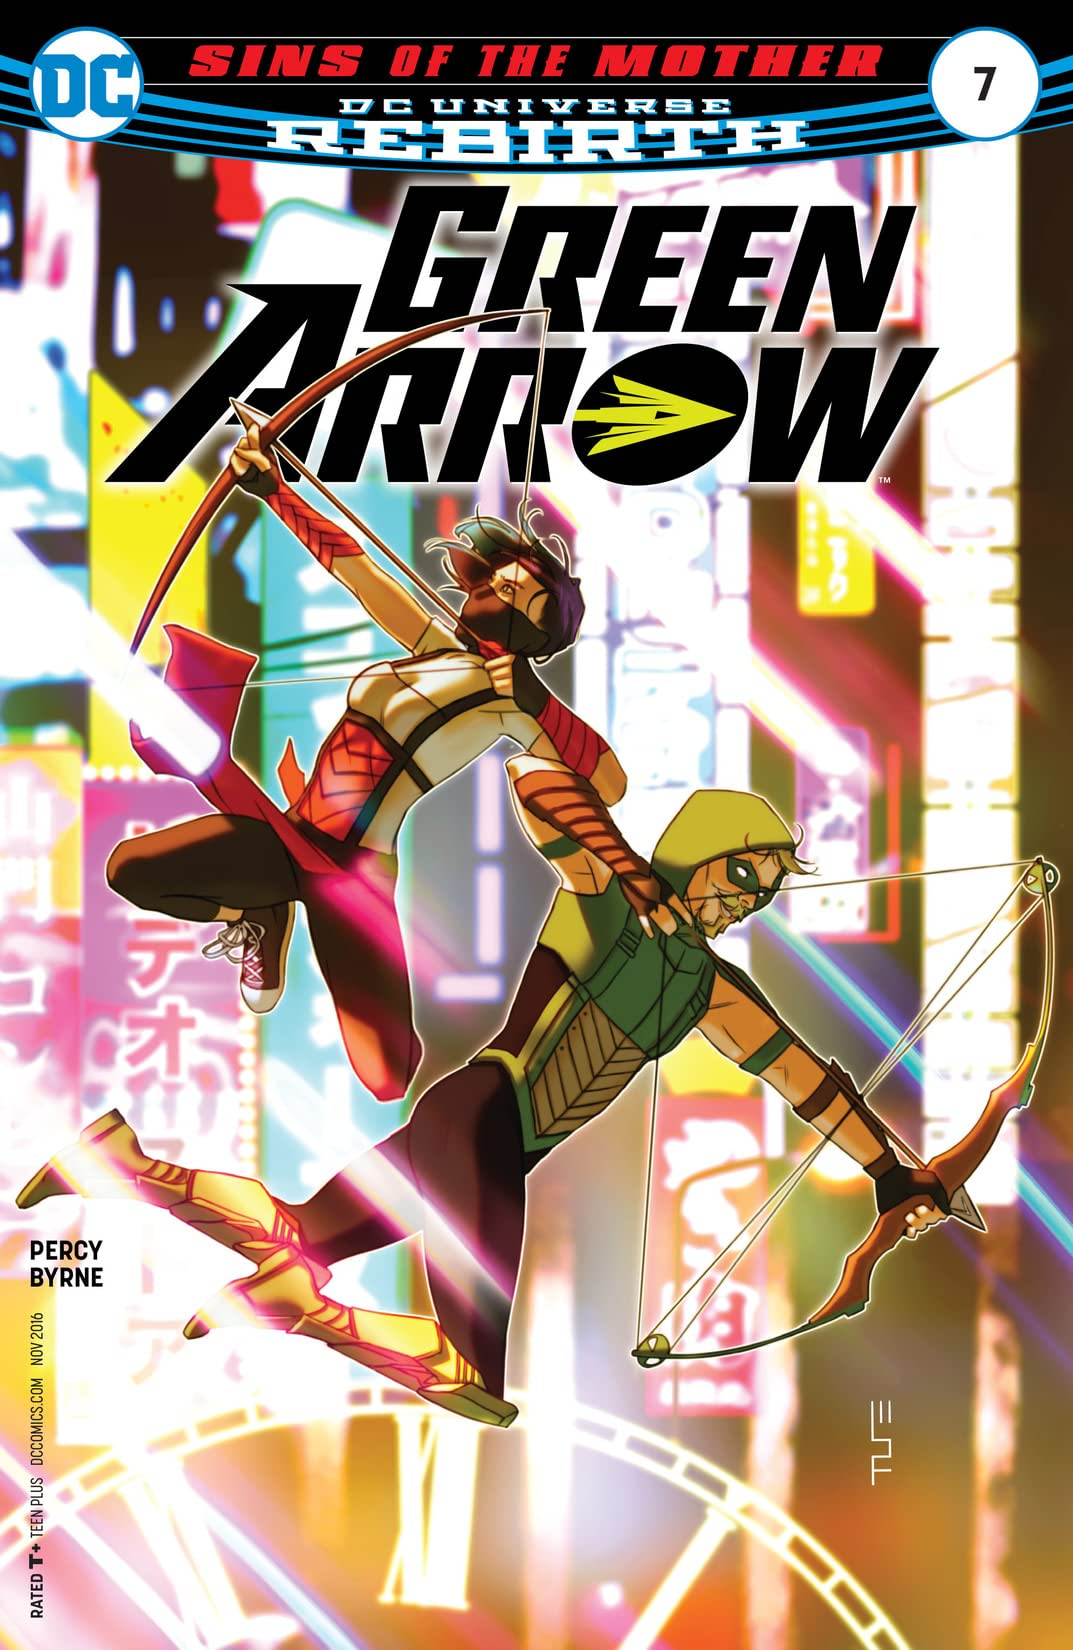 Green Arrow (2016-) #7